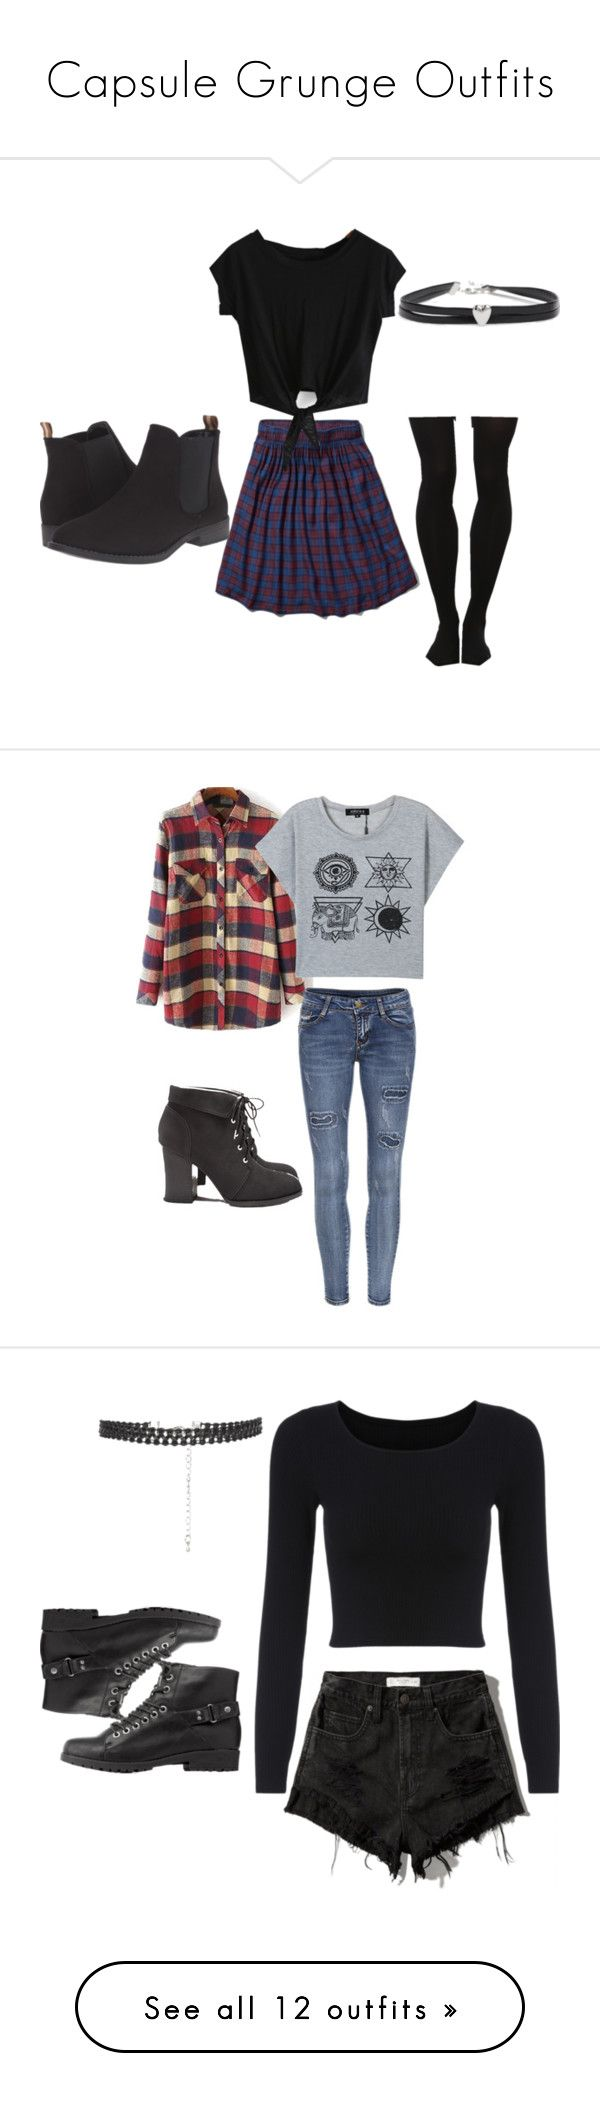 """""""Capsule Grunge Outfits"""" by arabella-space ❤ liked on Polyvore featuring Abercrombie & Fitch, Patrizia, ASOS, women's clothing, women, female, woman, misses, juniors and Forever 21"""